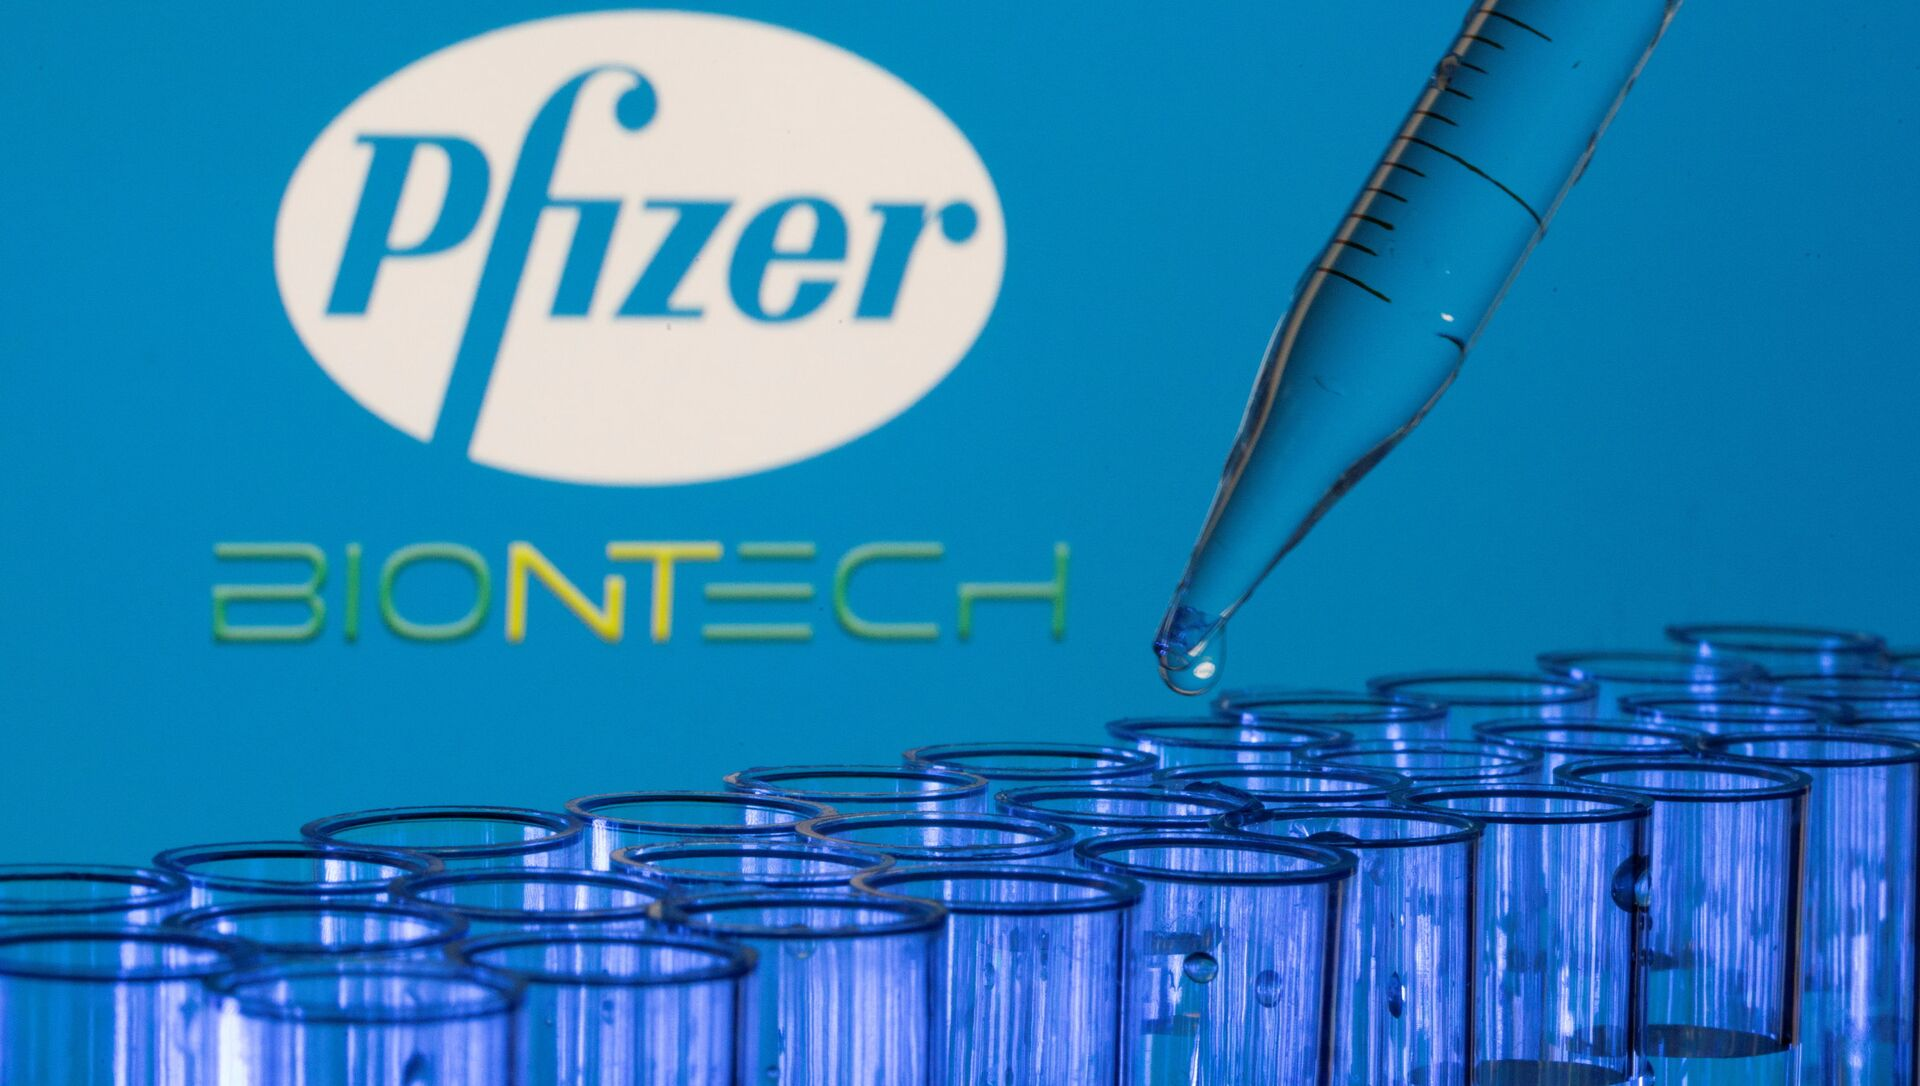 Test tubes are seen in front of displayed Pfizer and Biontech logos in this illustration taken, May 21, 2021. - Sputnik International, 1920, 01.08.2021